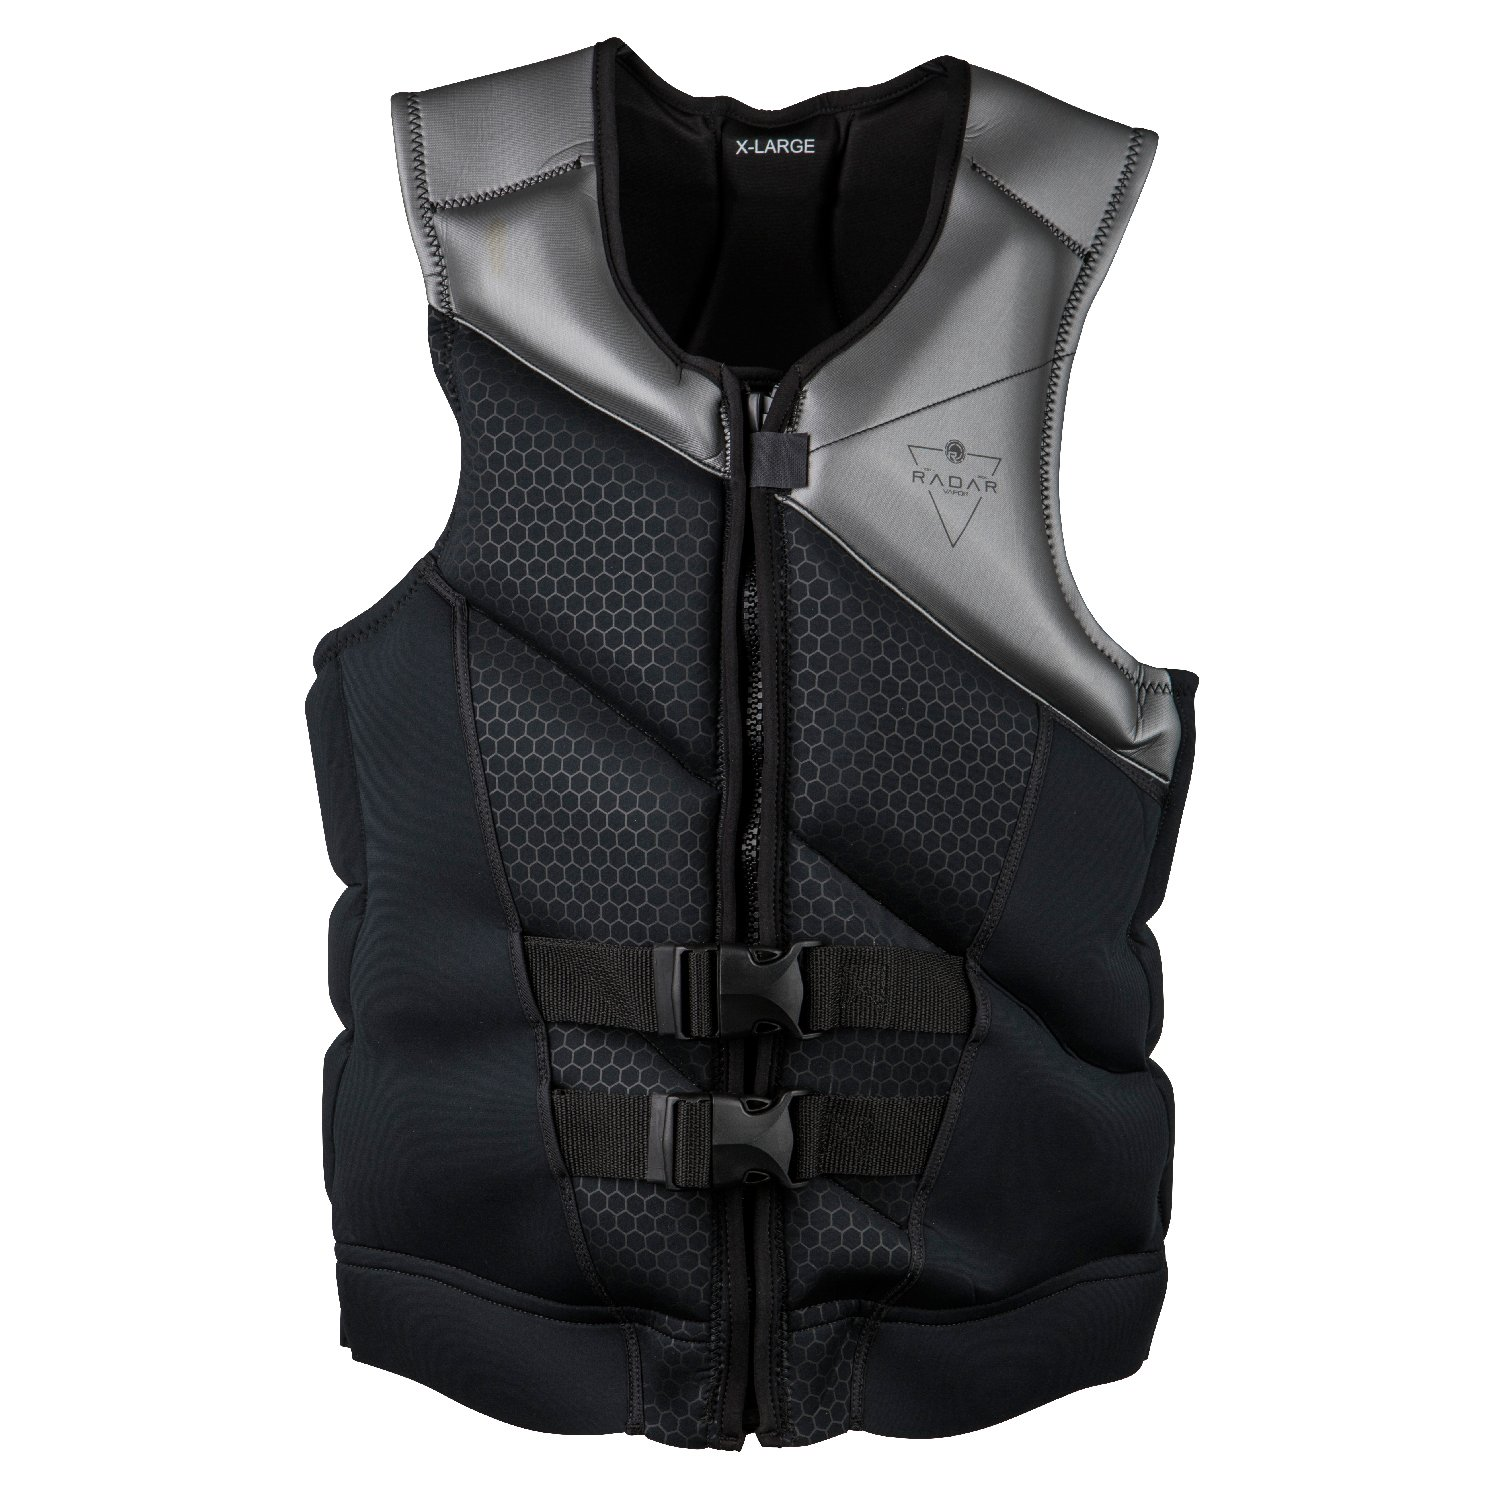 Radar X 2.0 - CGA Life Vest - Black / Gunmetal (2019)-Small by Radar